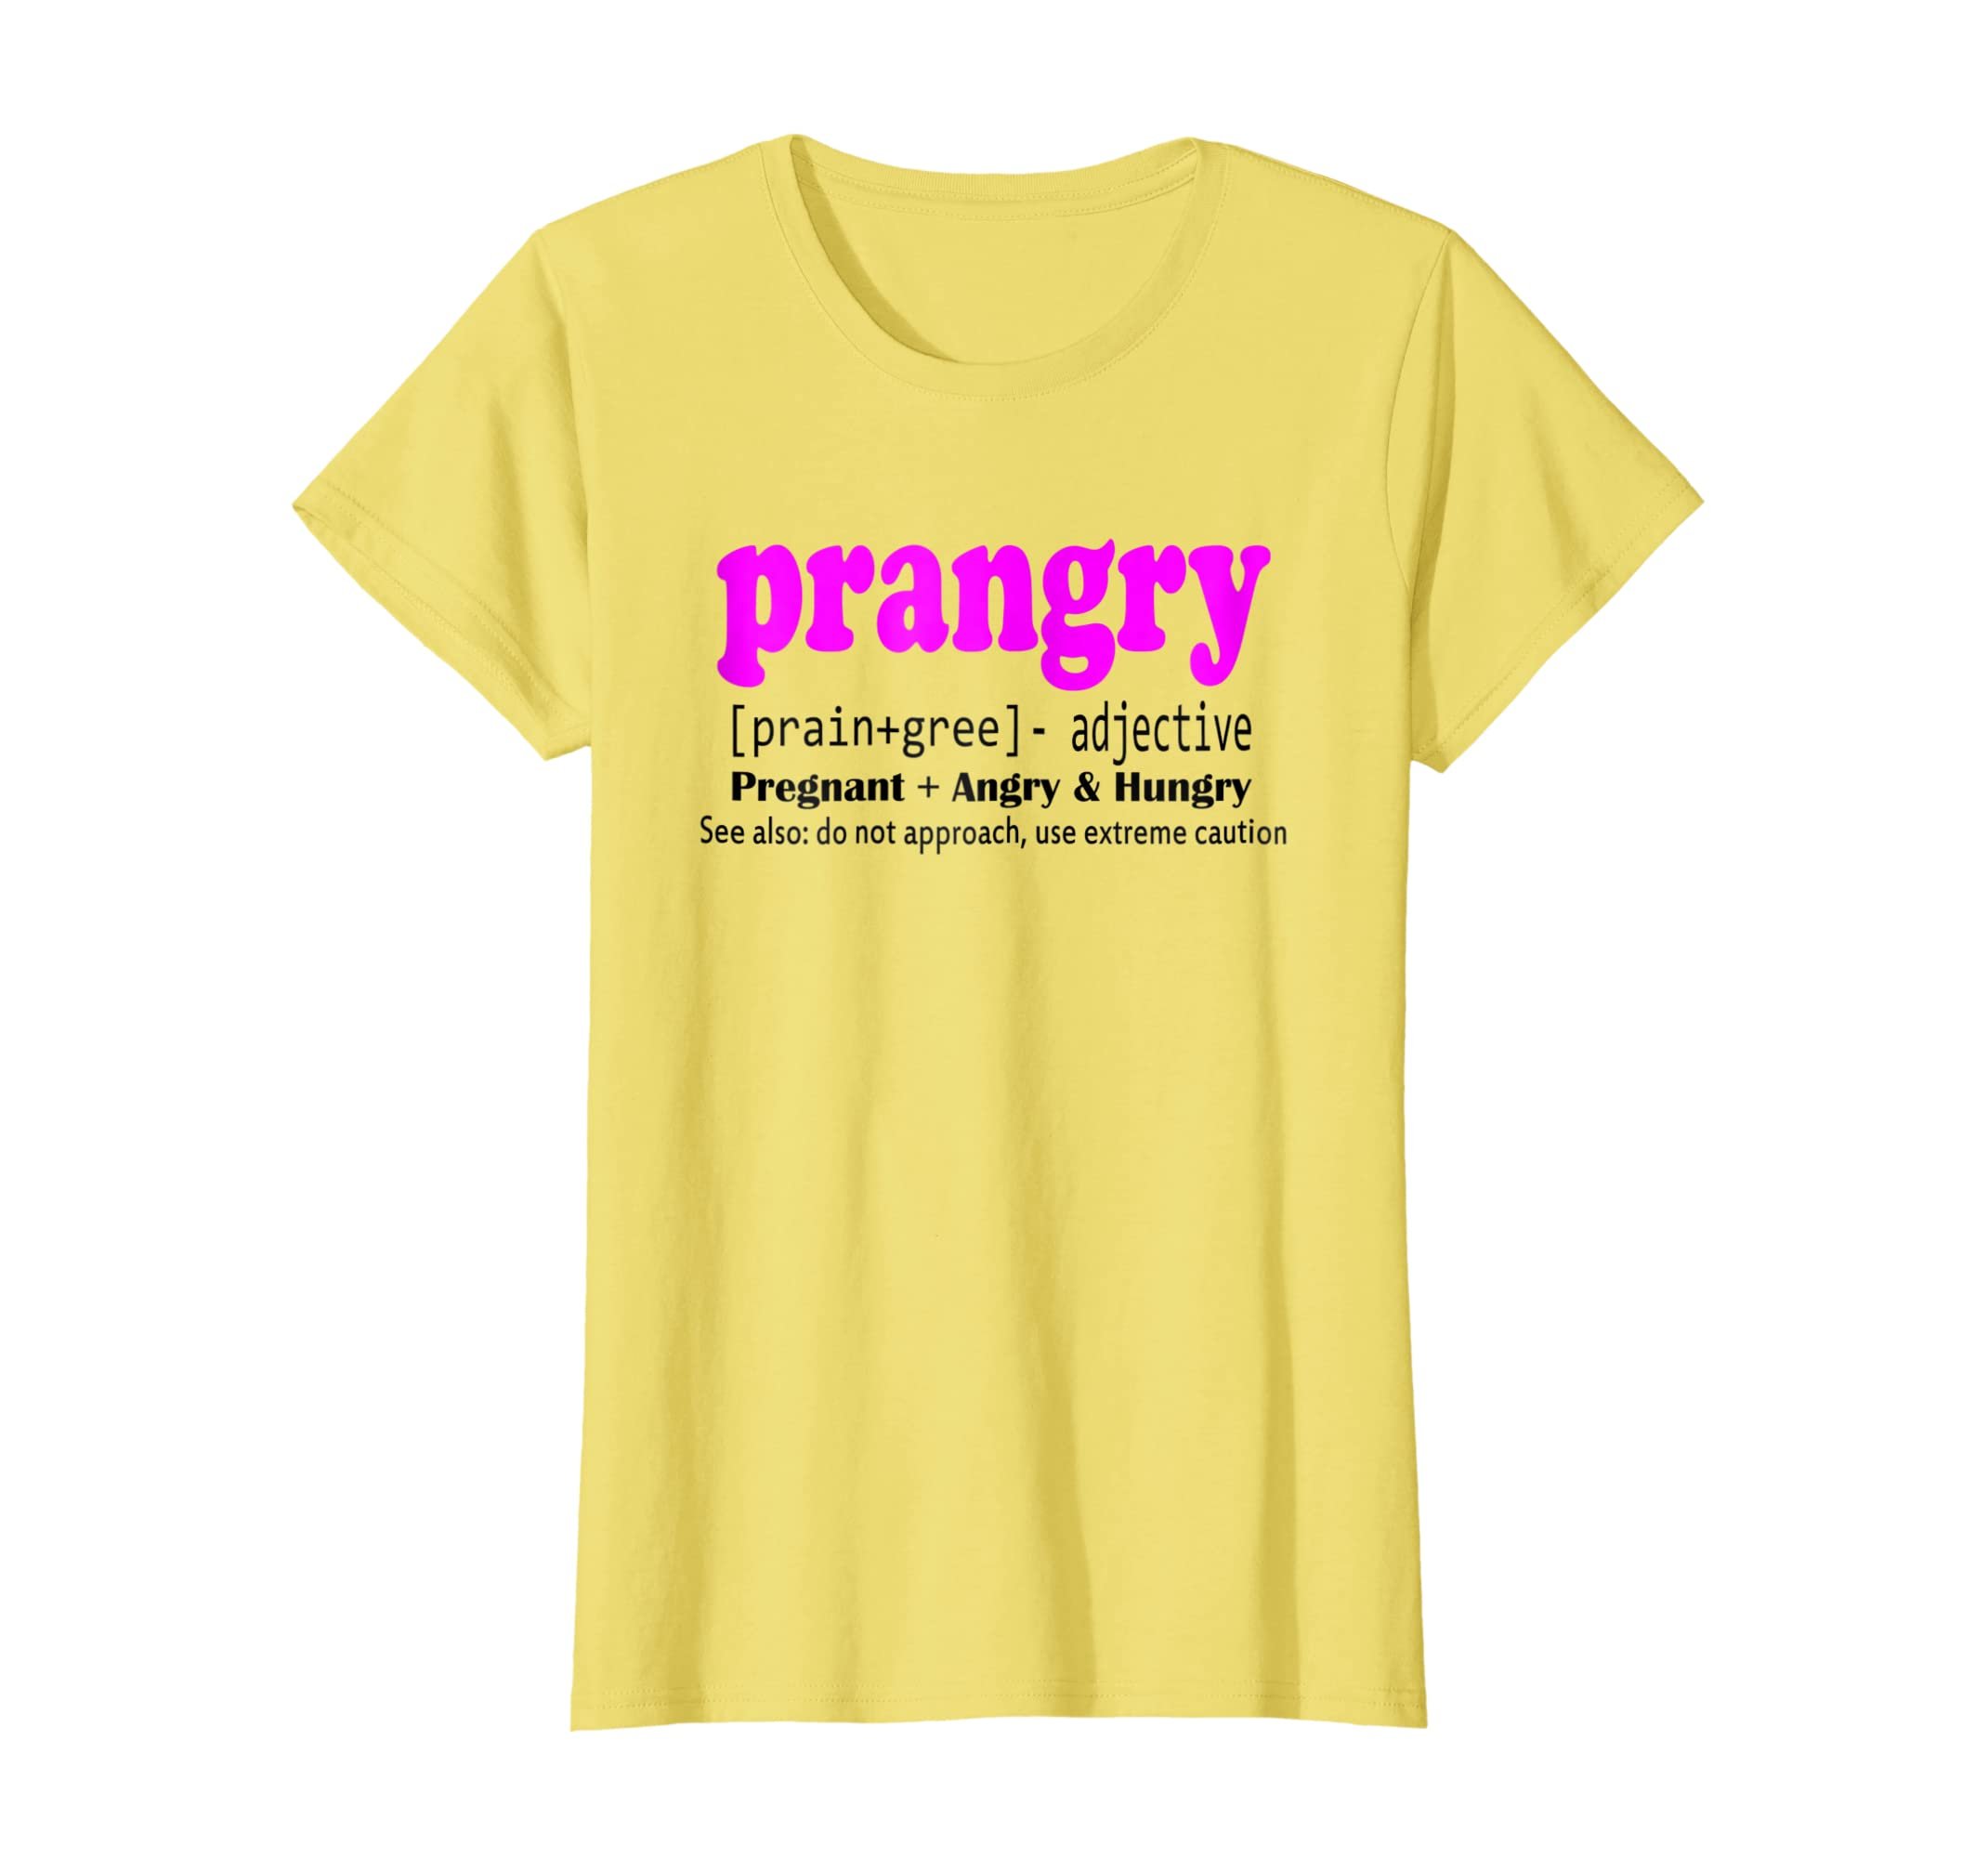 3a0c8ada65131 Amazon.com: Womens Prangry Shirts - Pregnancy T Shirt - Soon to be Mom  Gifts: Clothing